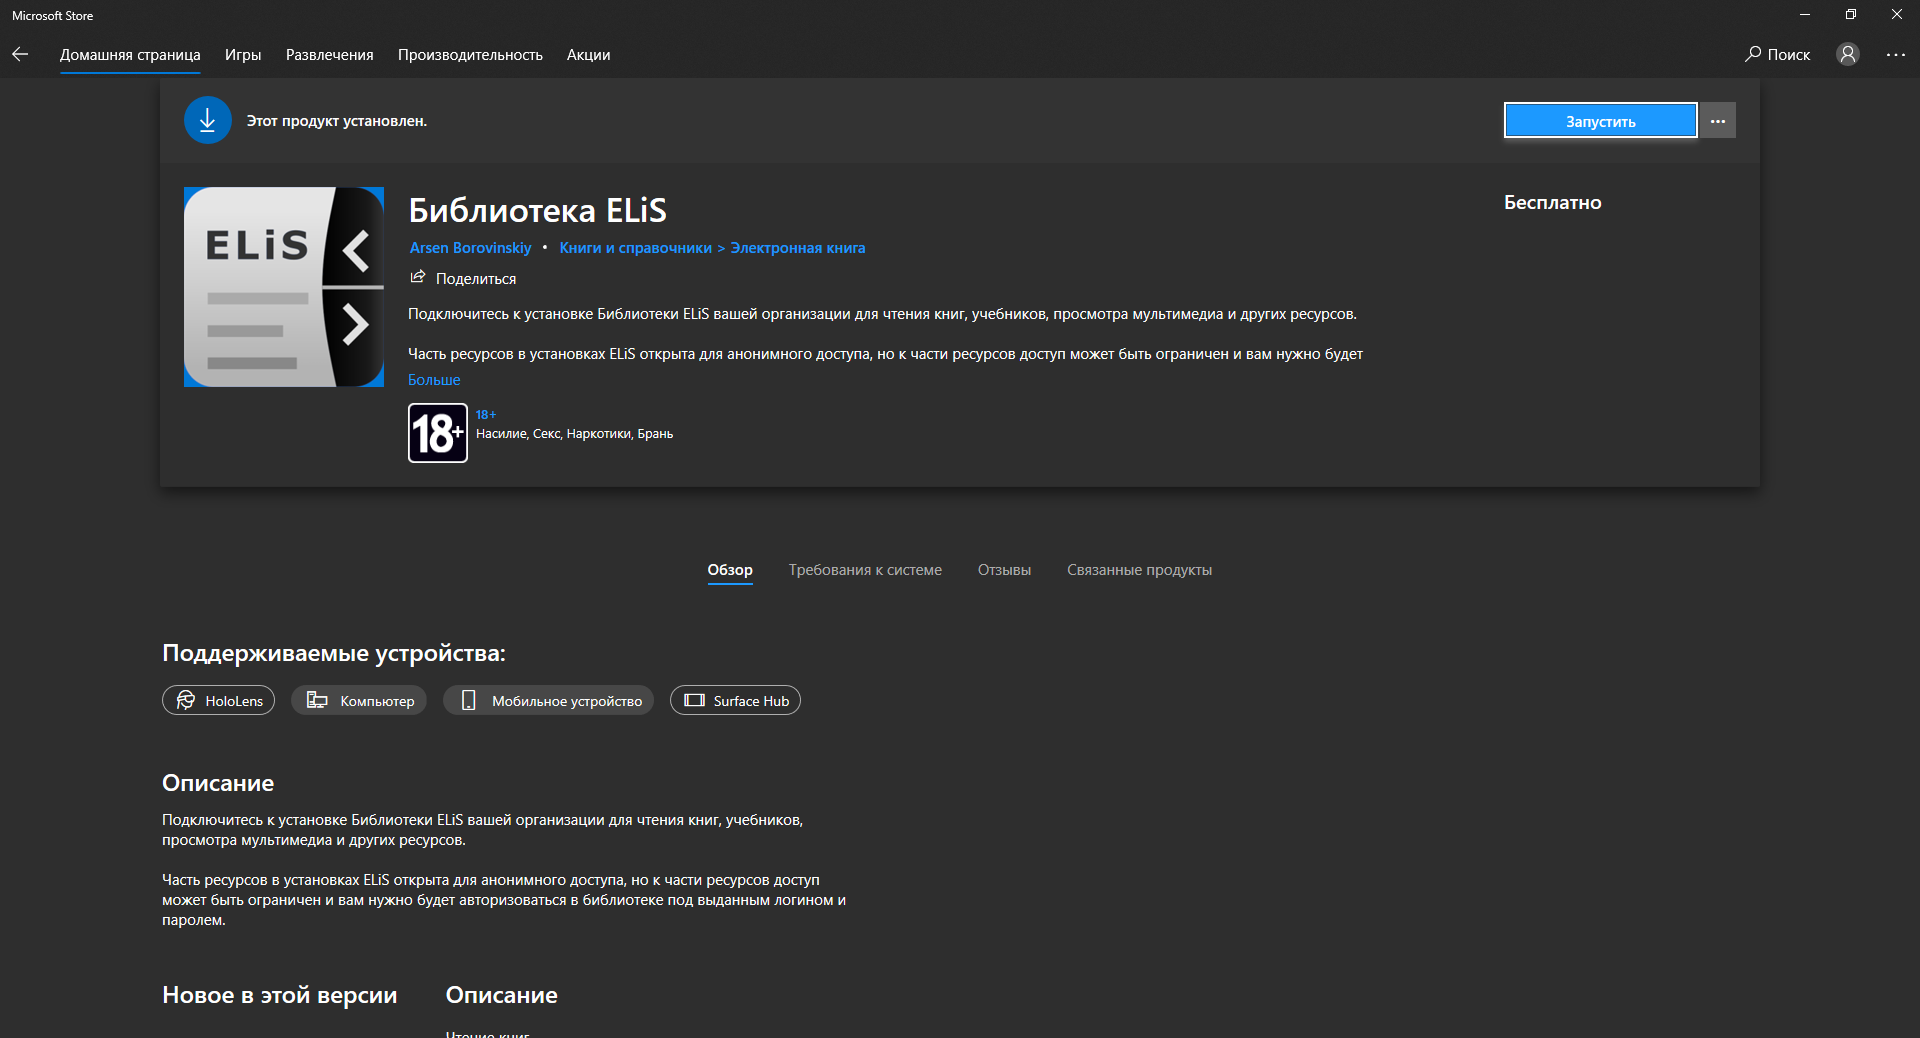 elis_library_in_microsoft_store.png